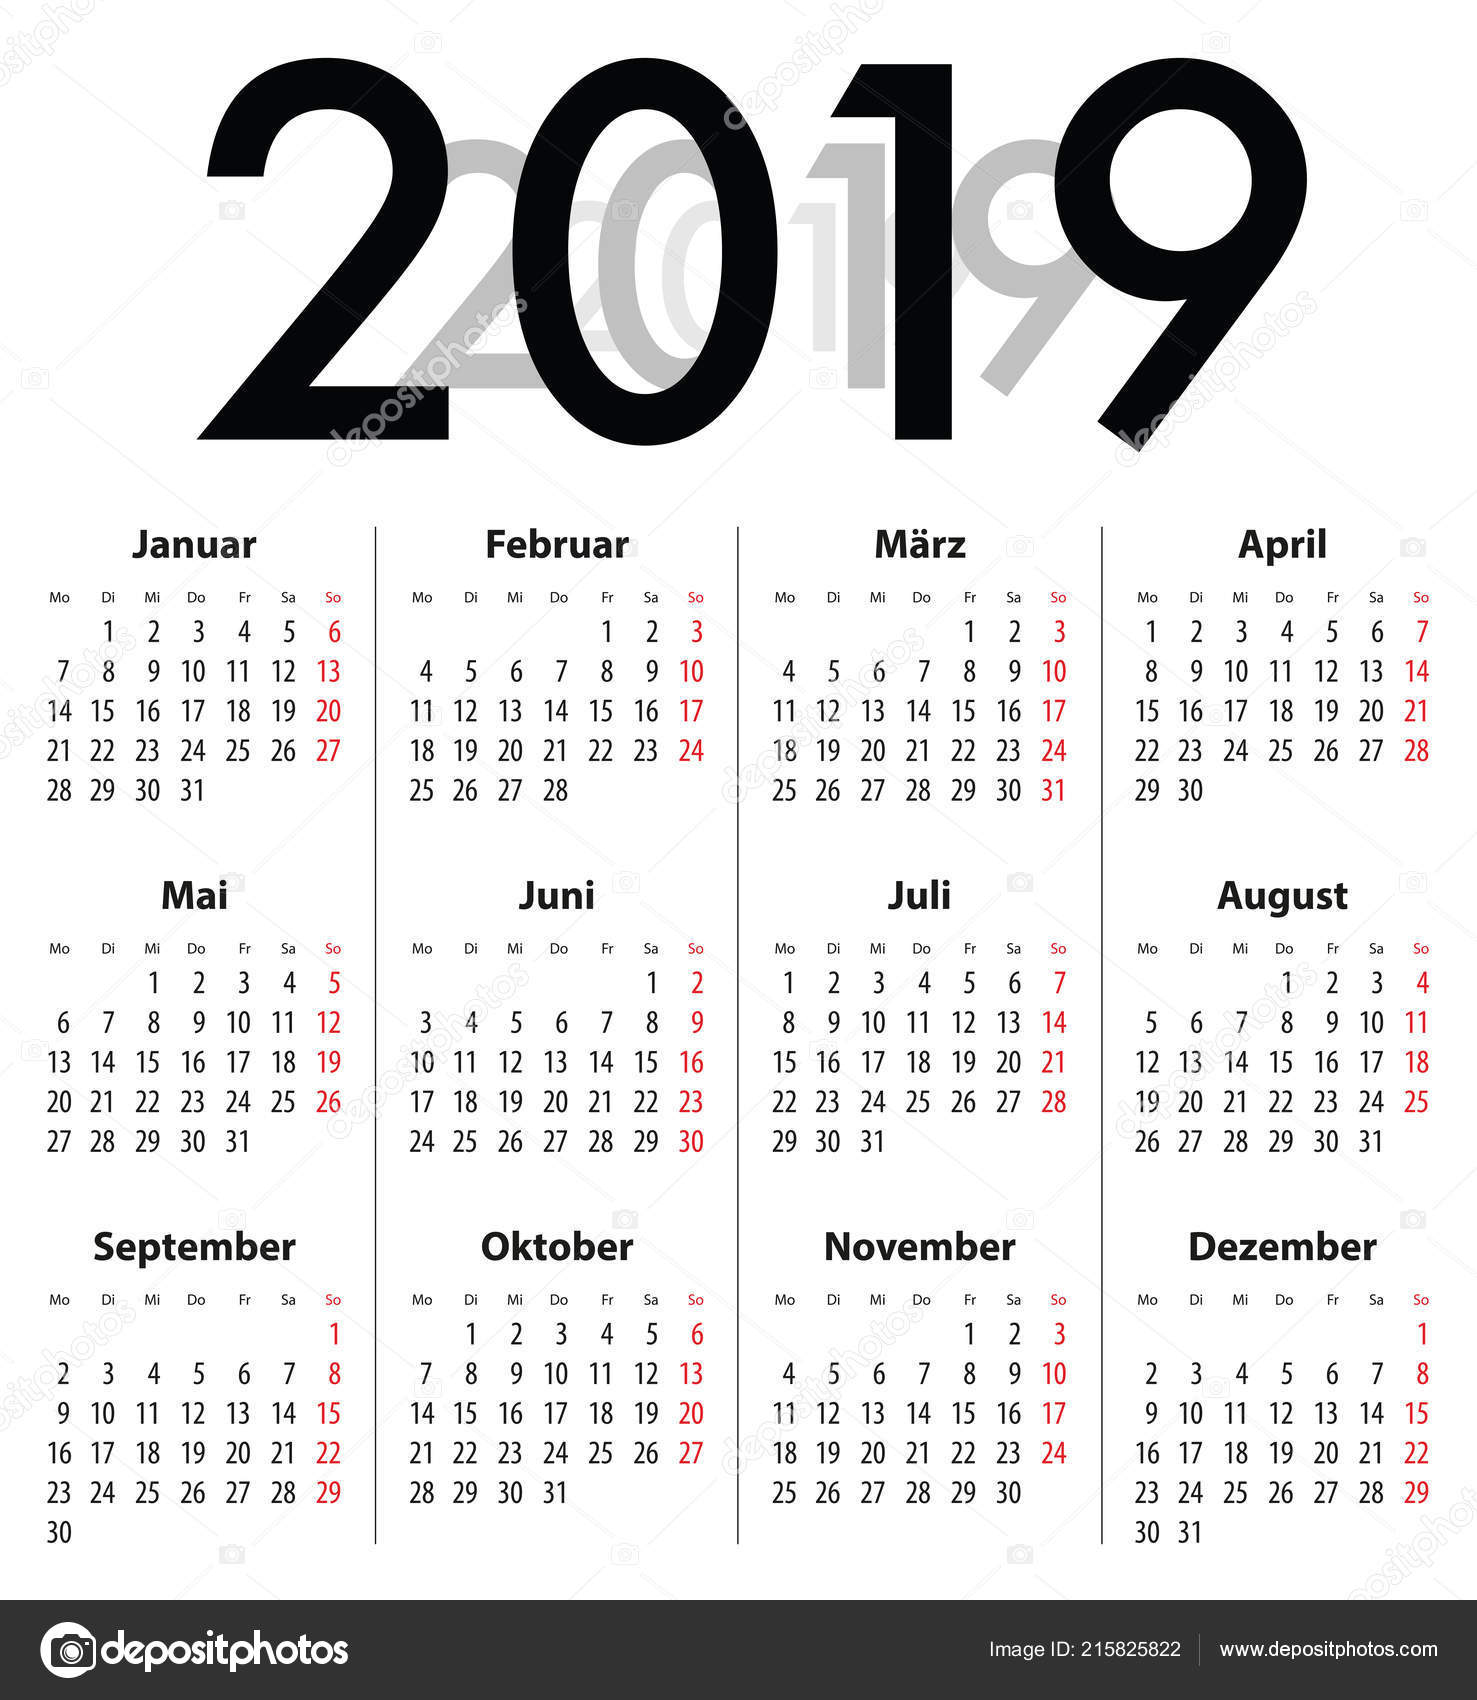 Best Calendars 2019 German Deutsch Calendar Grid Regular Digits 2019 Best Calendar